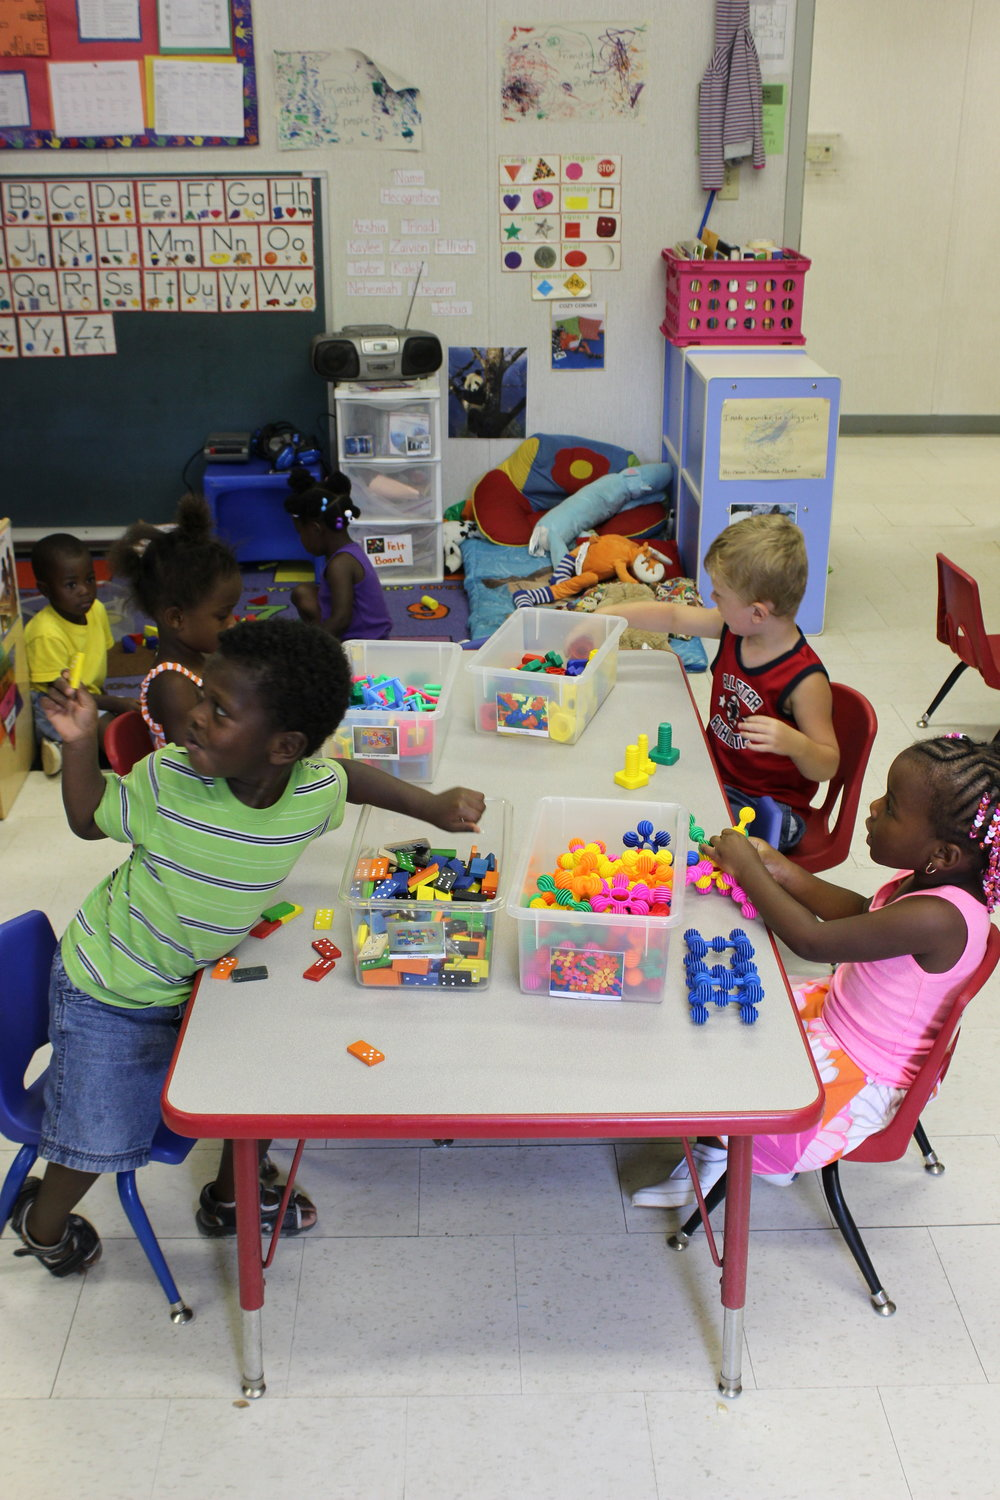 Three's and Four's Room - Tiny Treasures CDC uses The Creative Curriculum in our Three and Four Year Old classroom. The children have access to the following learning centers daily: Books, Dramatic Play, Blocks, Art, Sand and Water, Science, Math, Manipulatives, Music and Movement, Writing and Computers, and Outdoors.